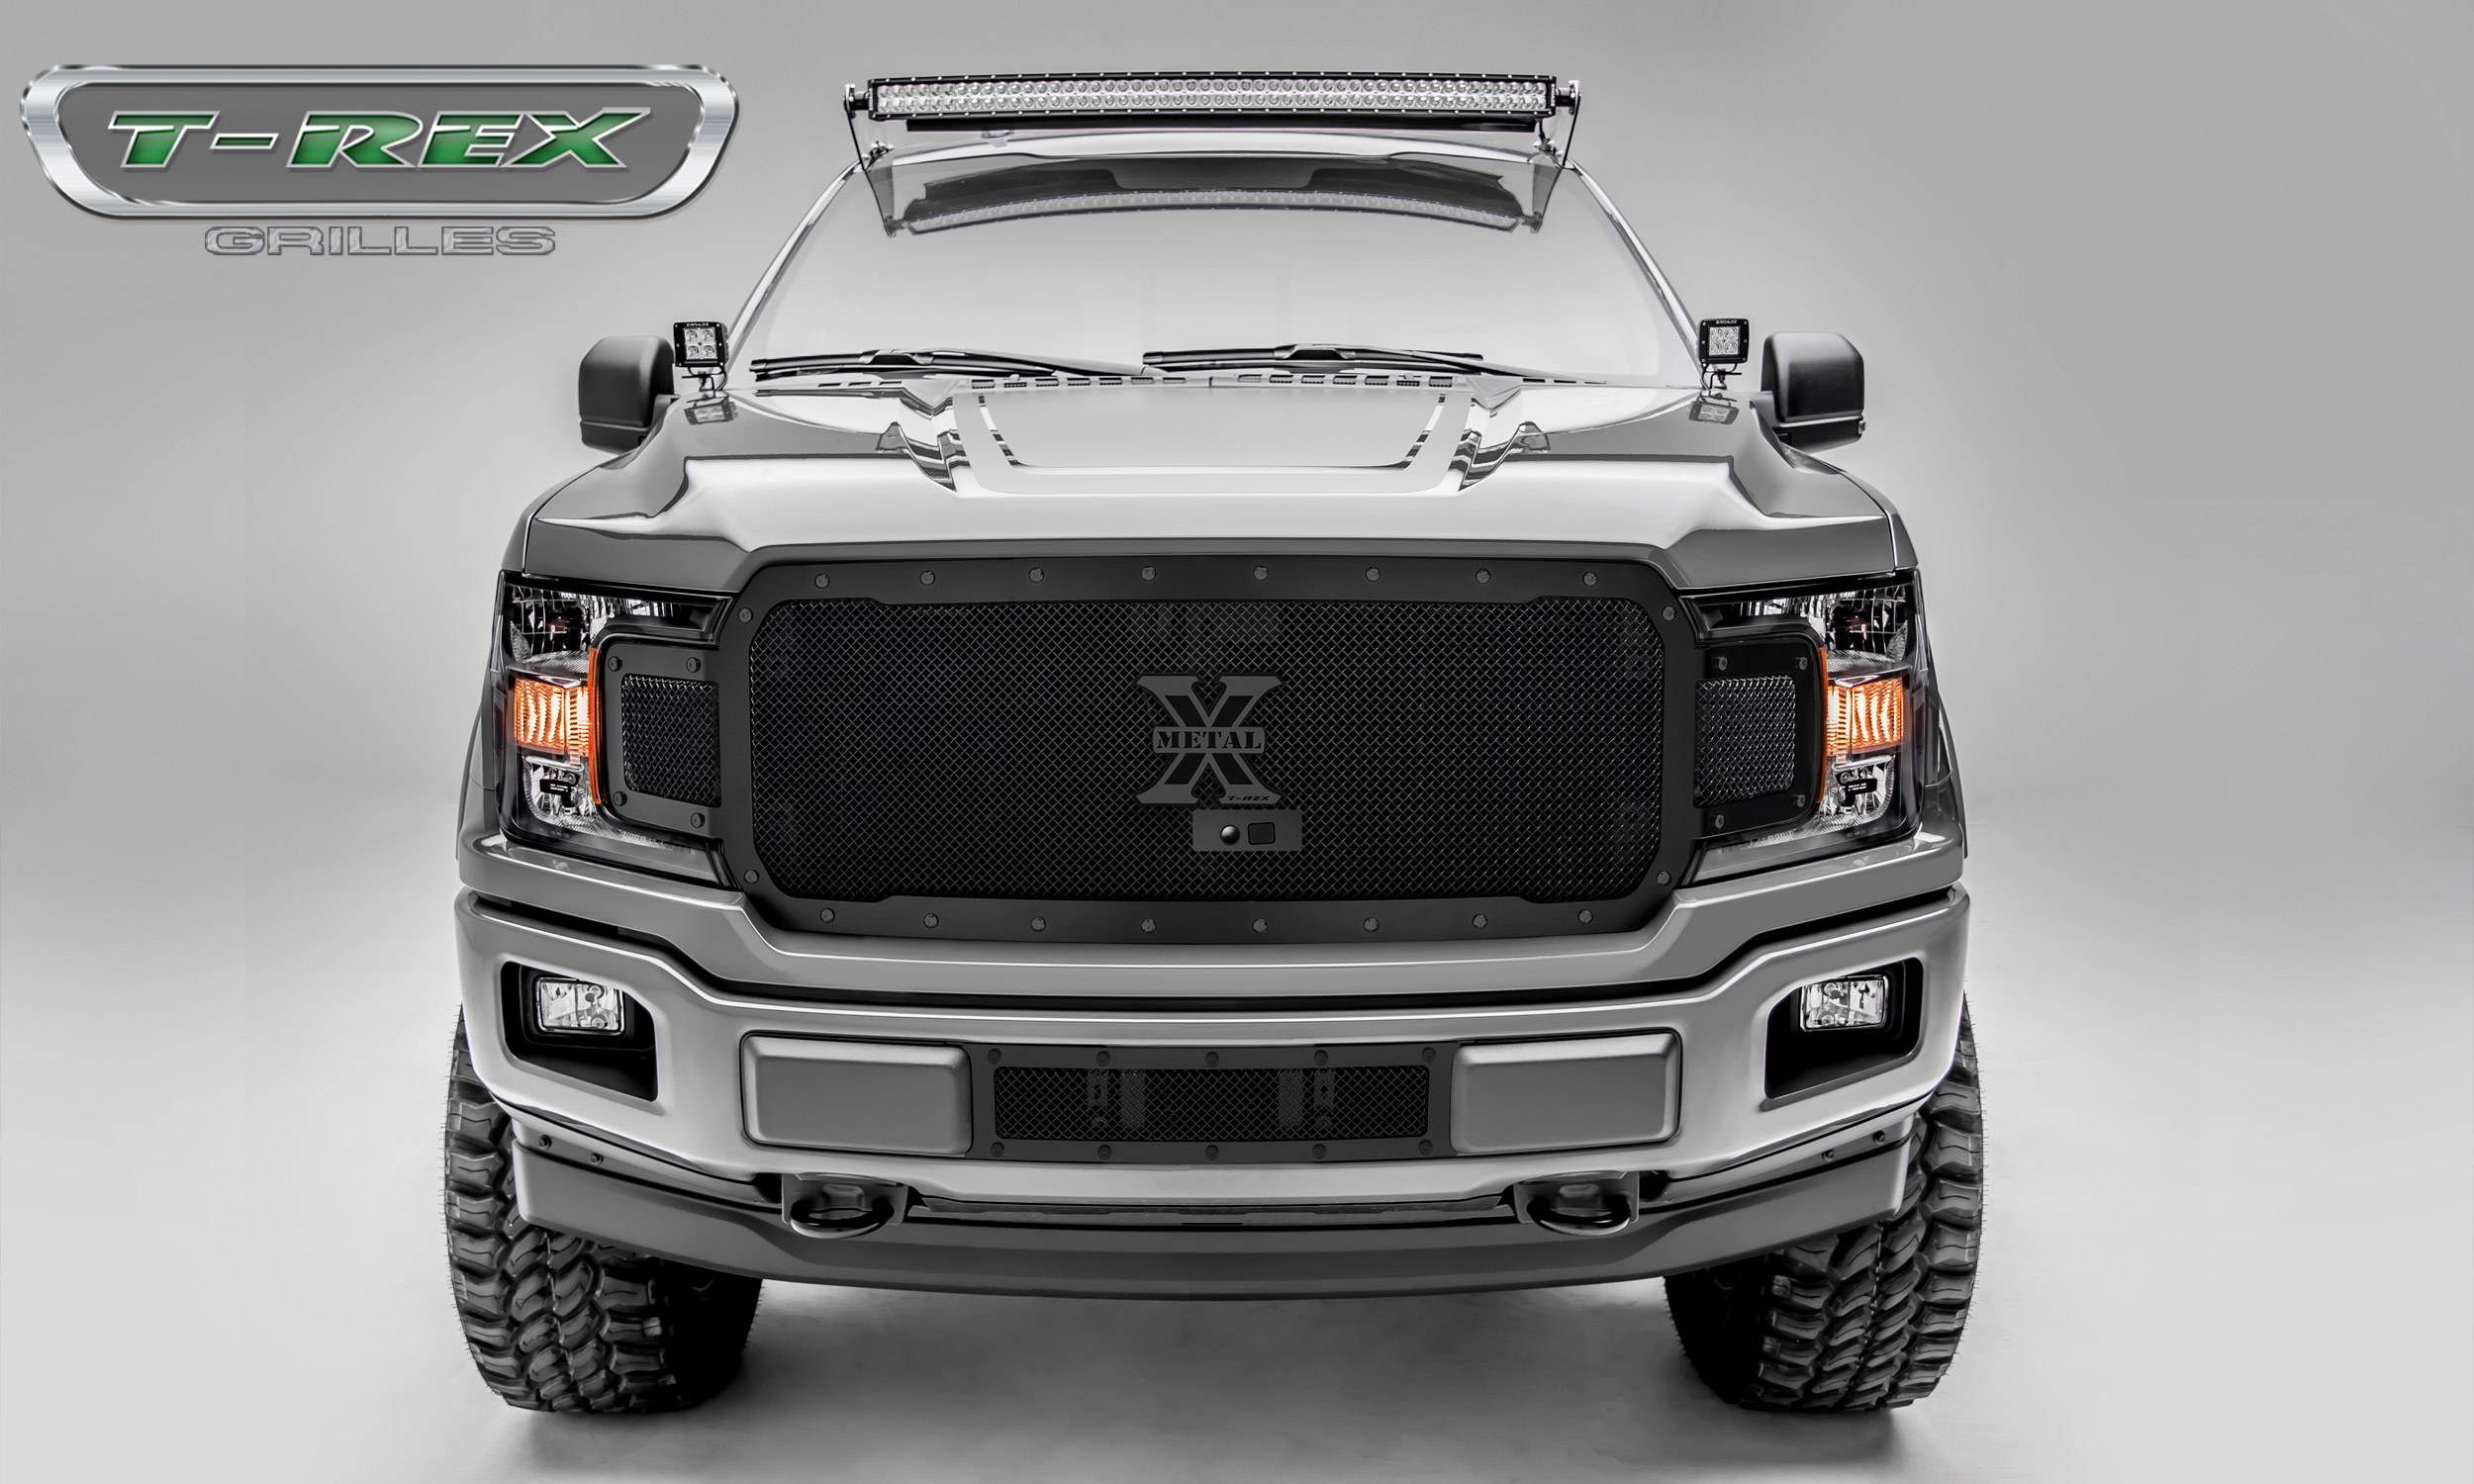 T-REX Grilles - Ford F-150 - X-Metal STEALTH Series - Main Grille Replacement - Fits Vehicles w/ FFC - Black Studs with Black Powdercoat Finish - Pt # 6715791-BR